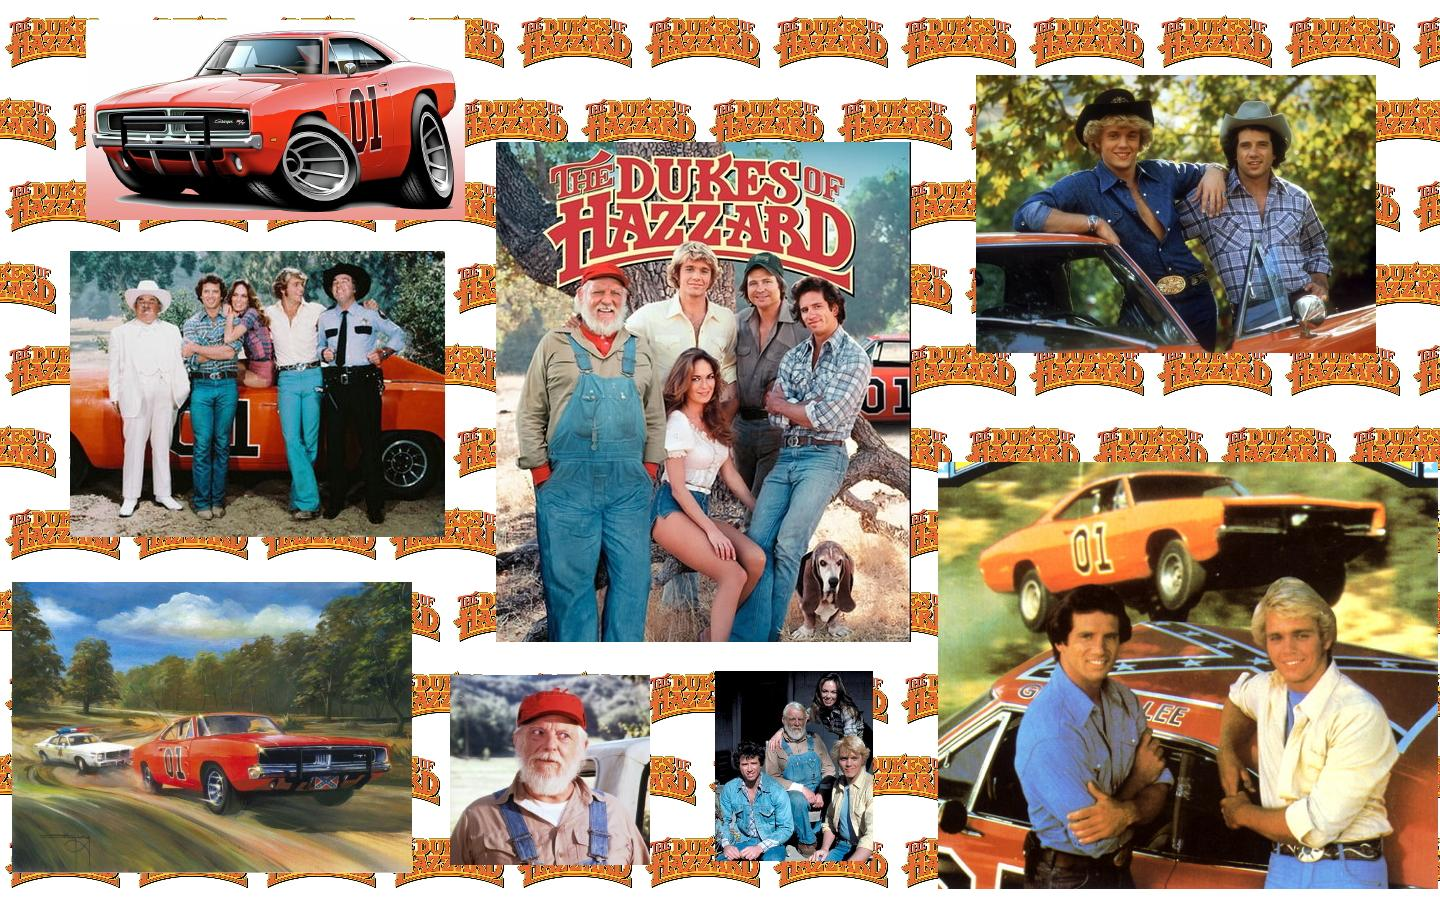 Free Download The Dukes Of Hazzard Wallpaper 127929 Hd Wallpapers